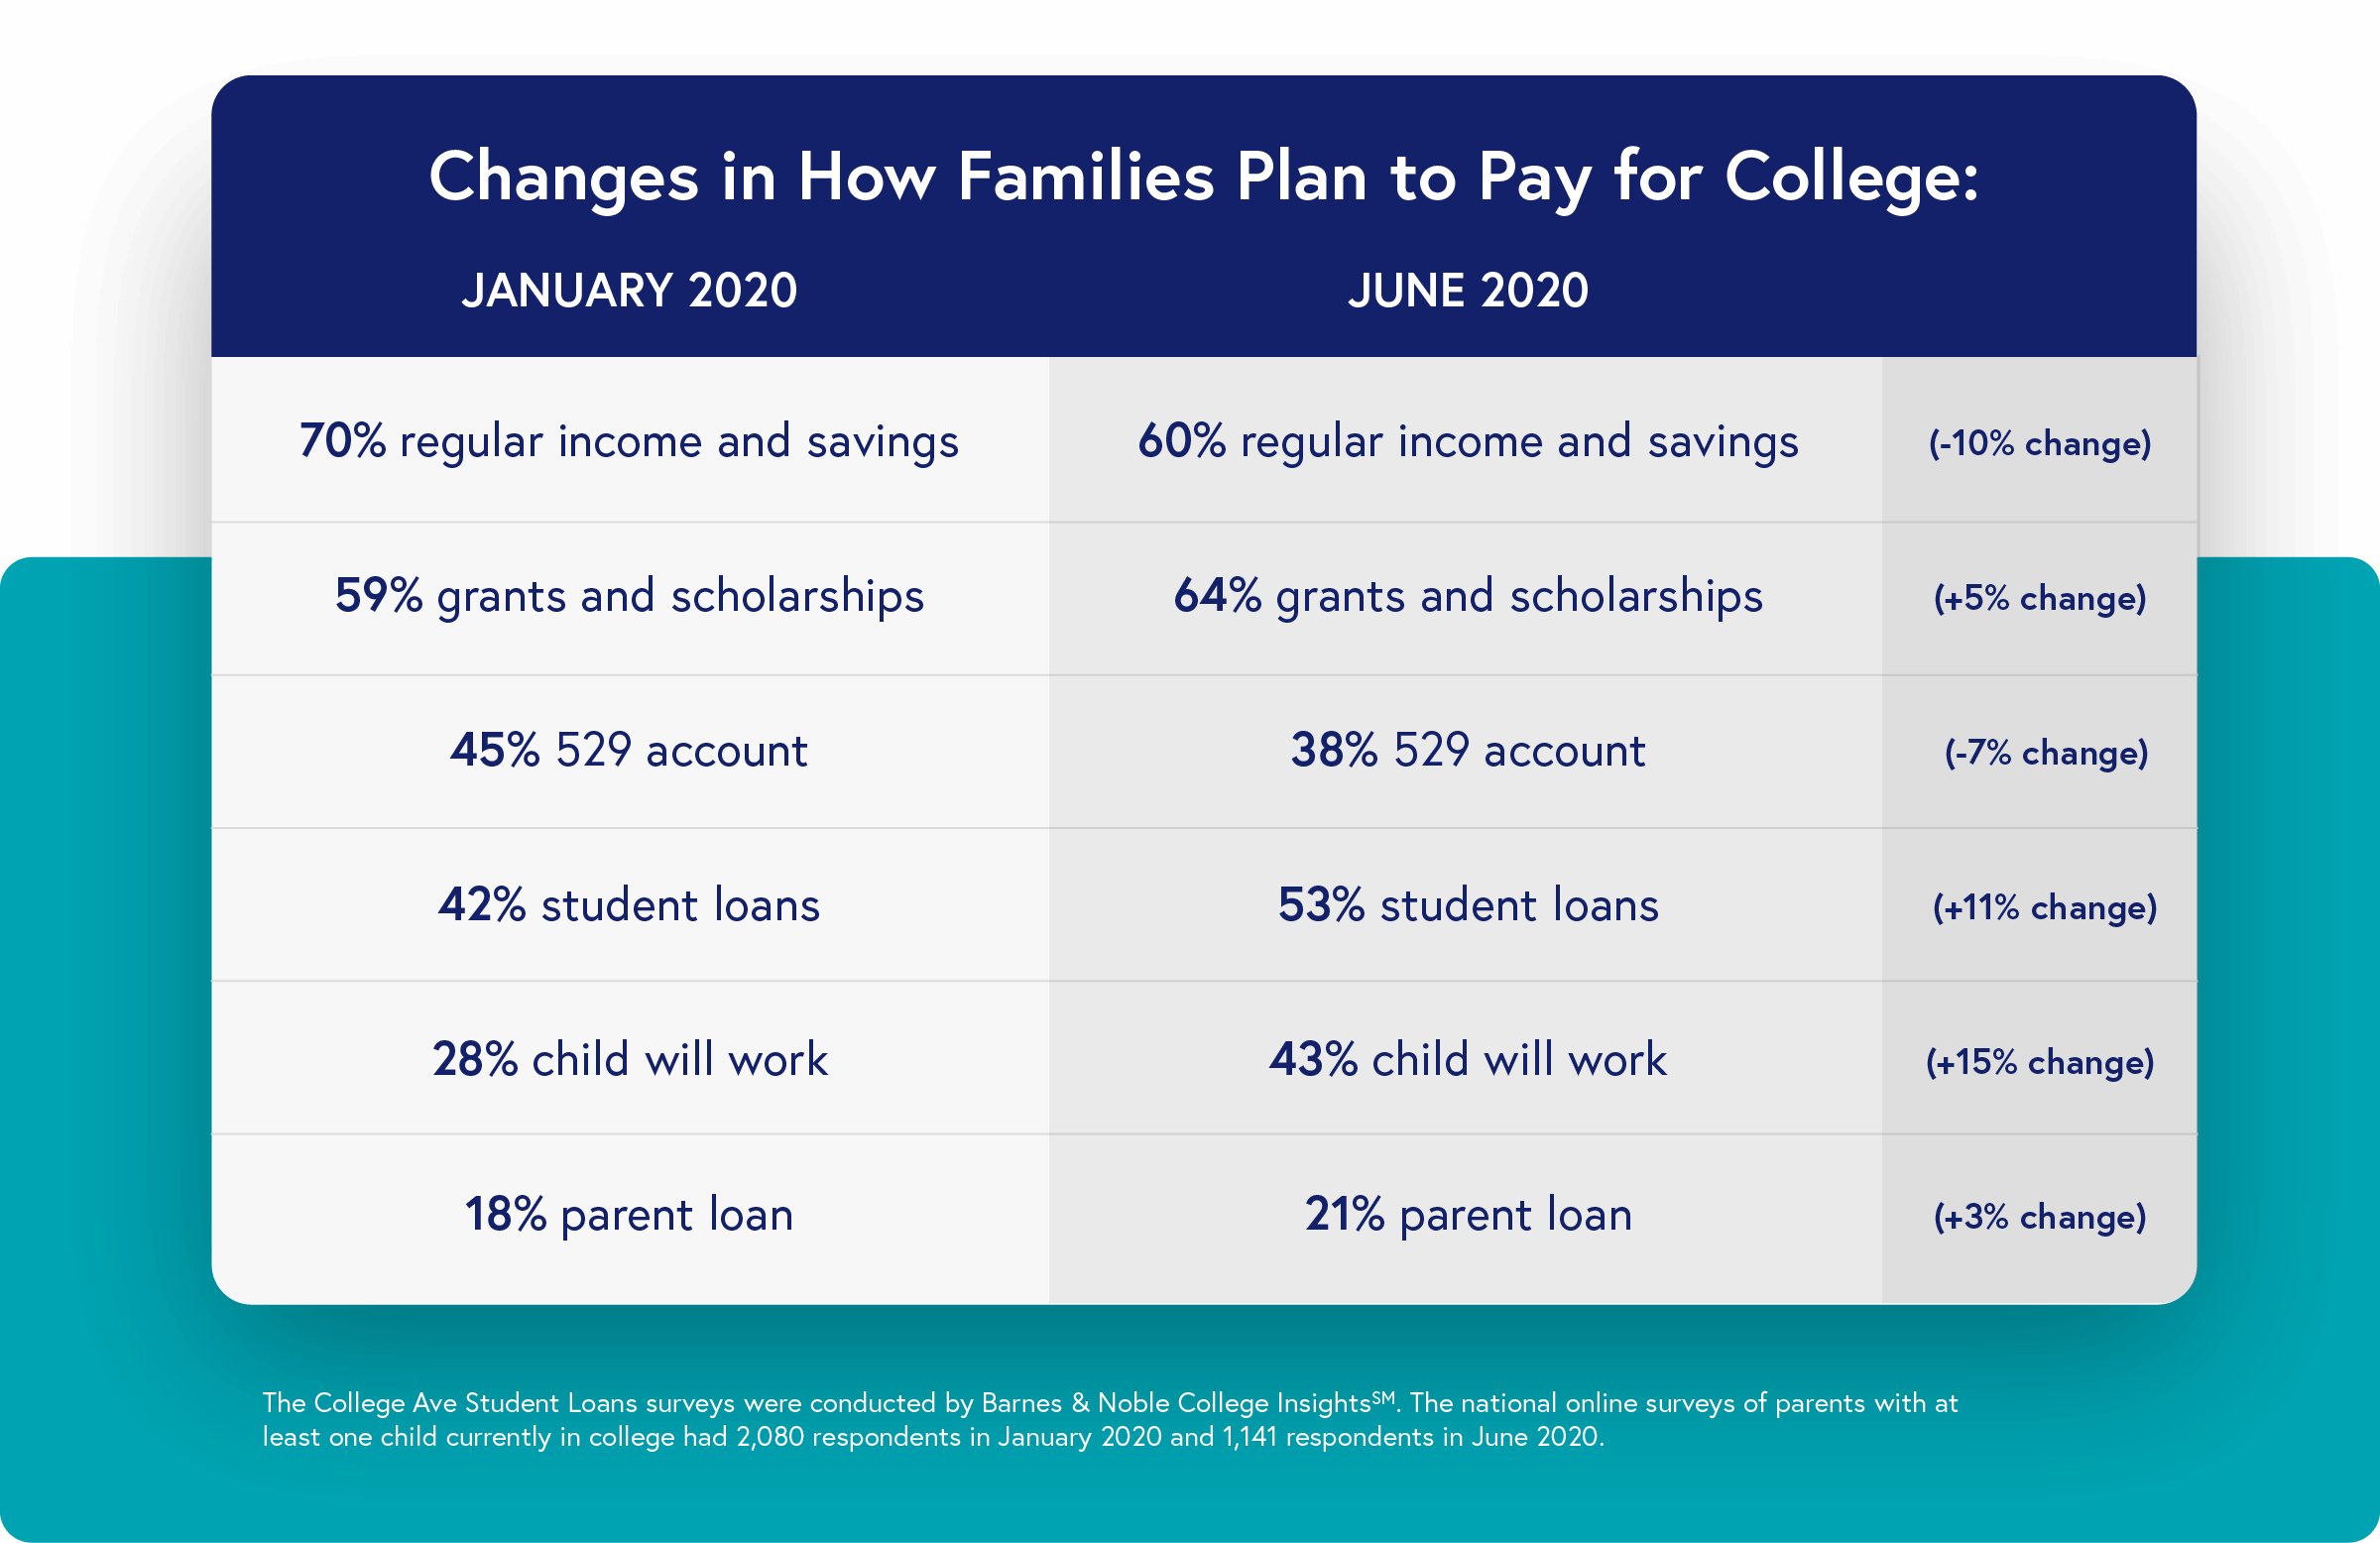 Changes in how families plan to plan for college - info below